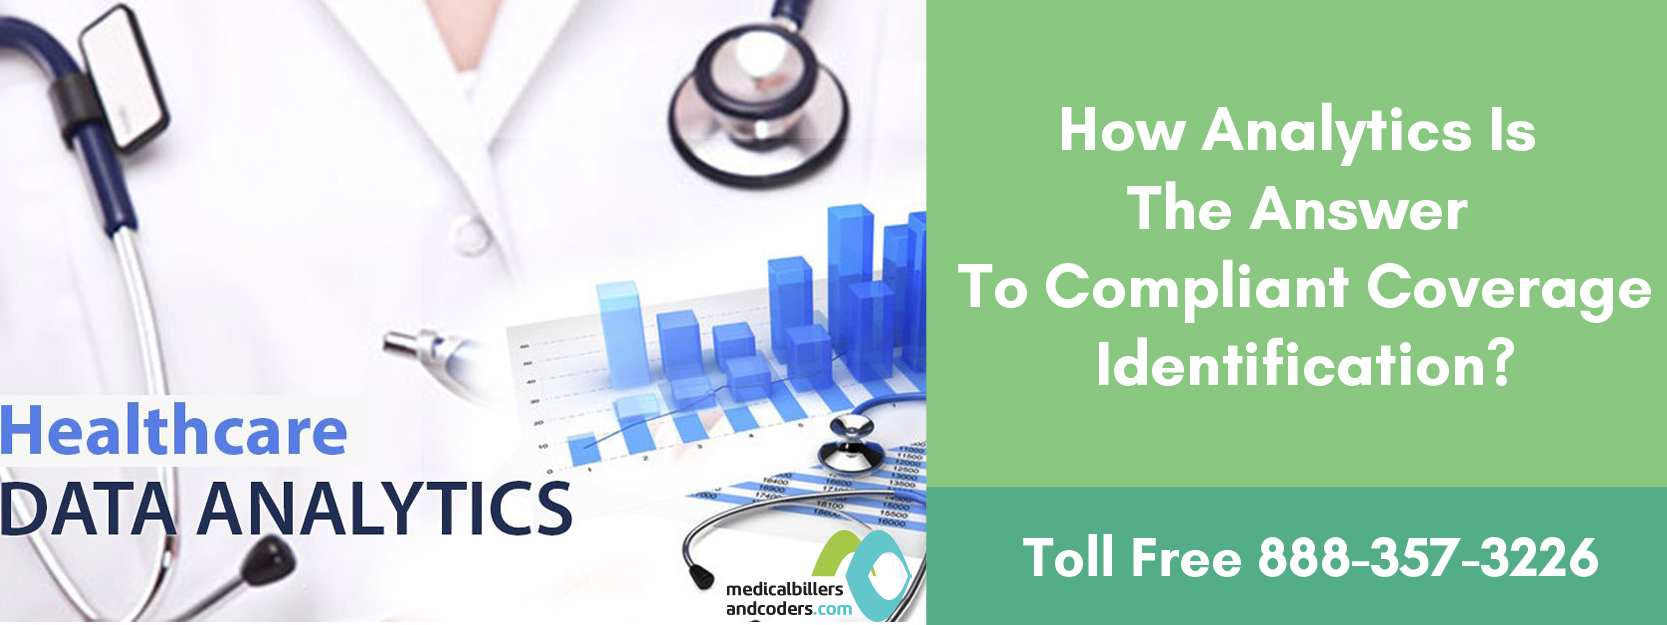 How Analytics Is The Answer To Compliant Coverage Identification for Medical Billing